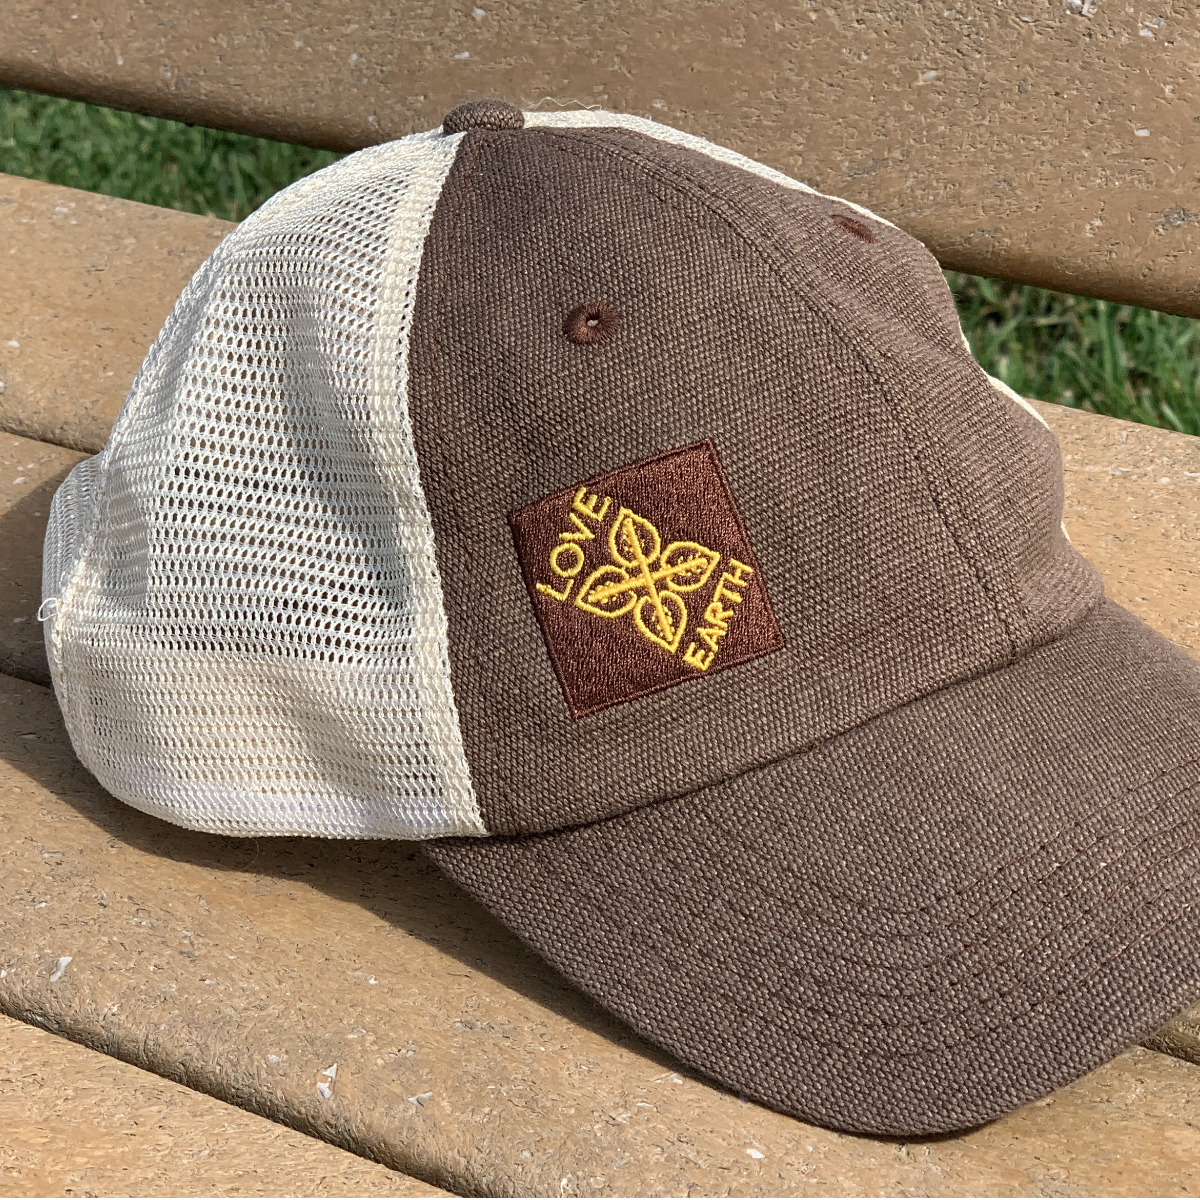 Cute trucker hat. Econscious with hemp and recycled plastic. Love + Earth | For Animals For Earth